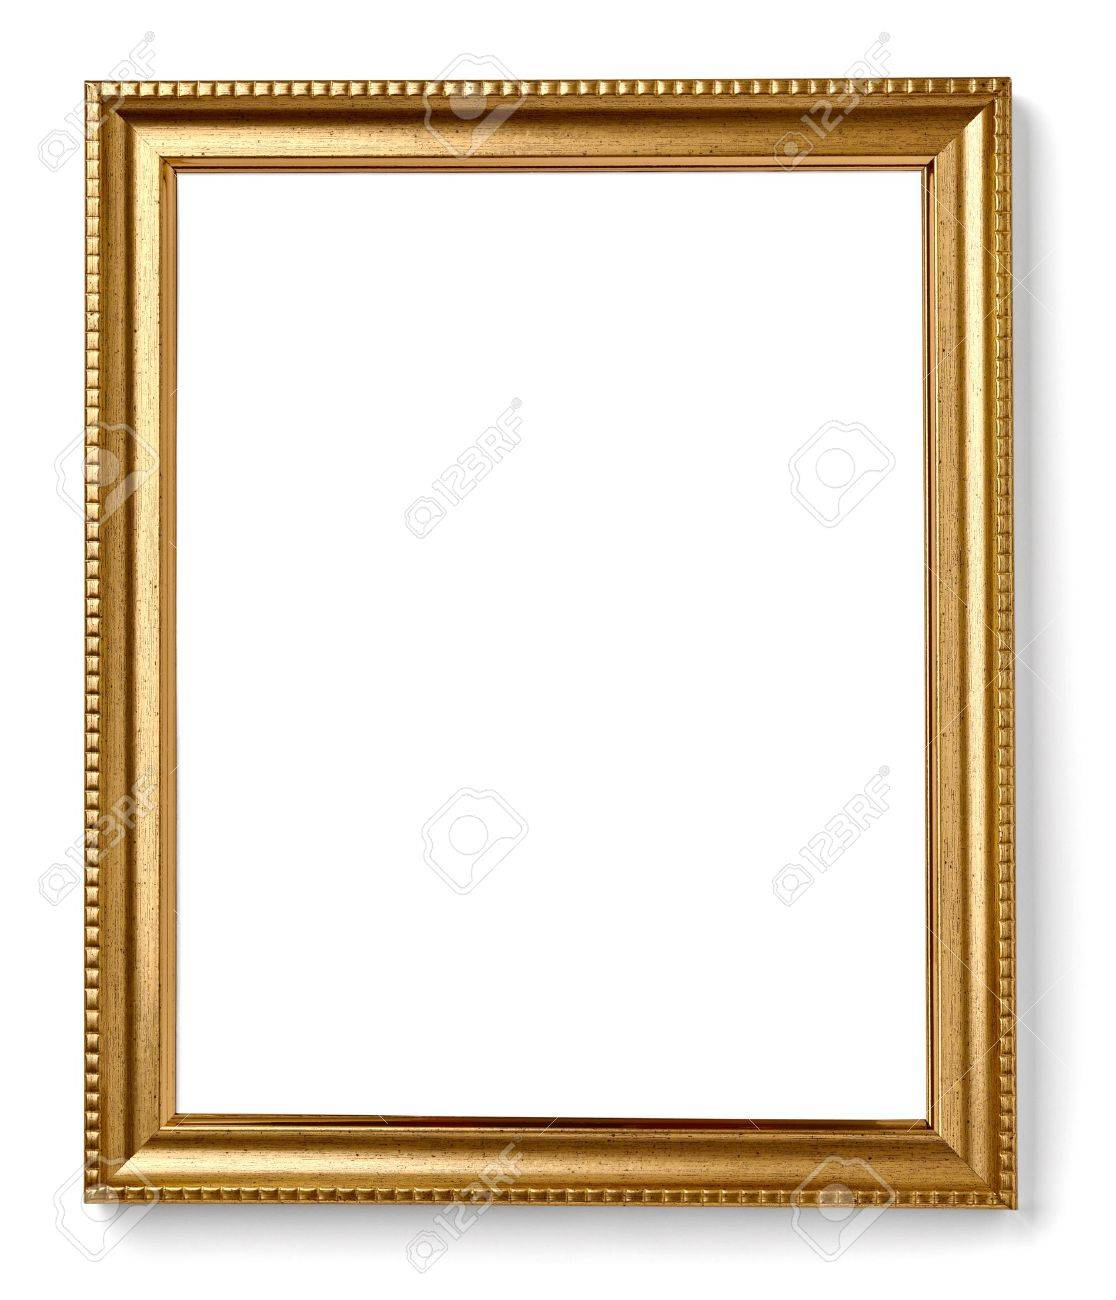 Wooden Frame For Painting Or Picture On White Background With ...